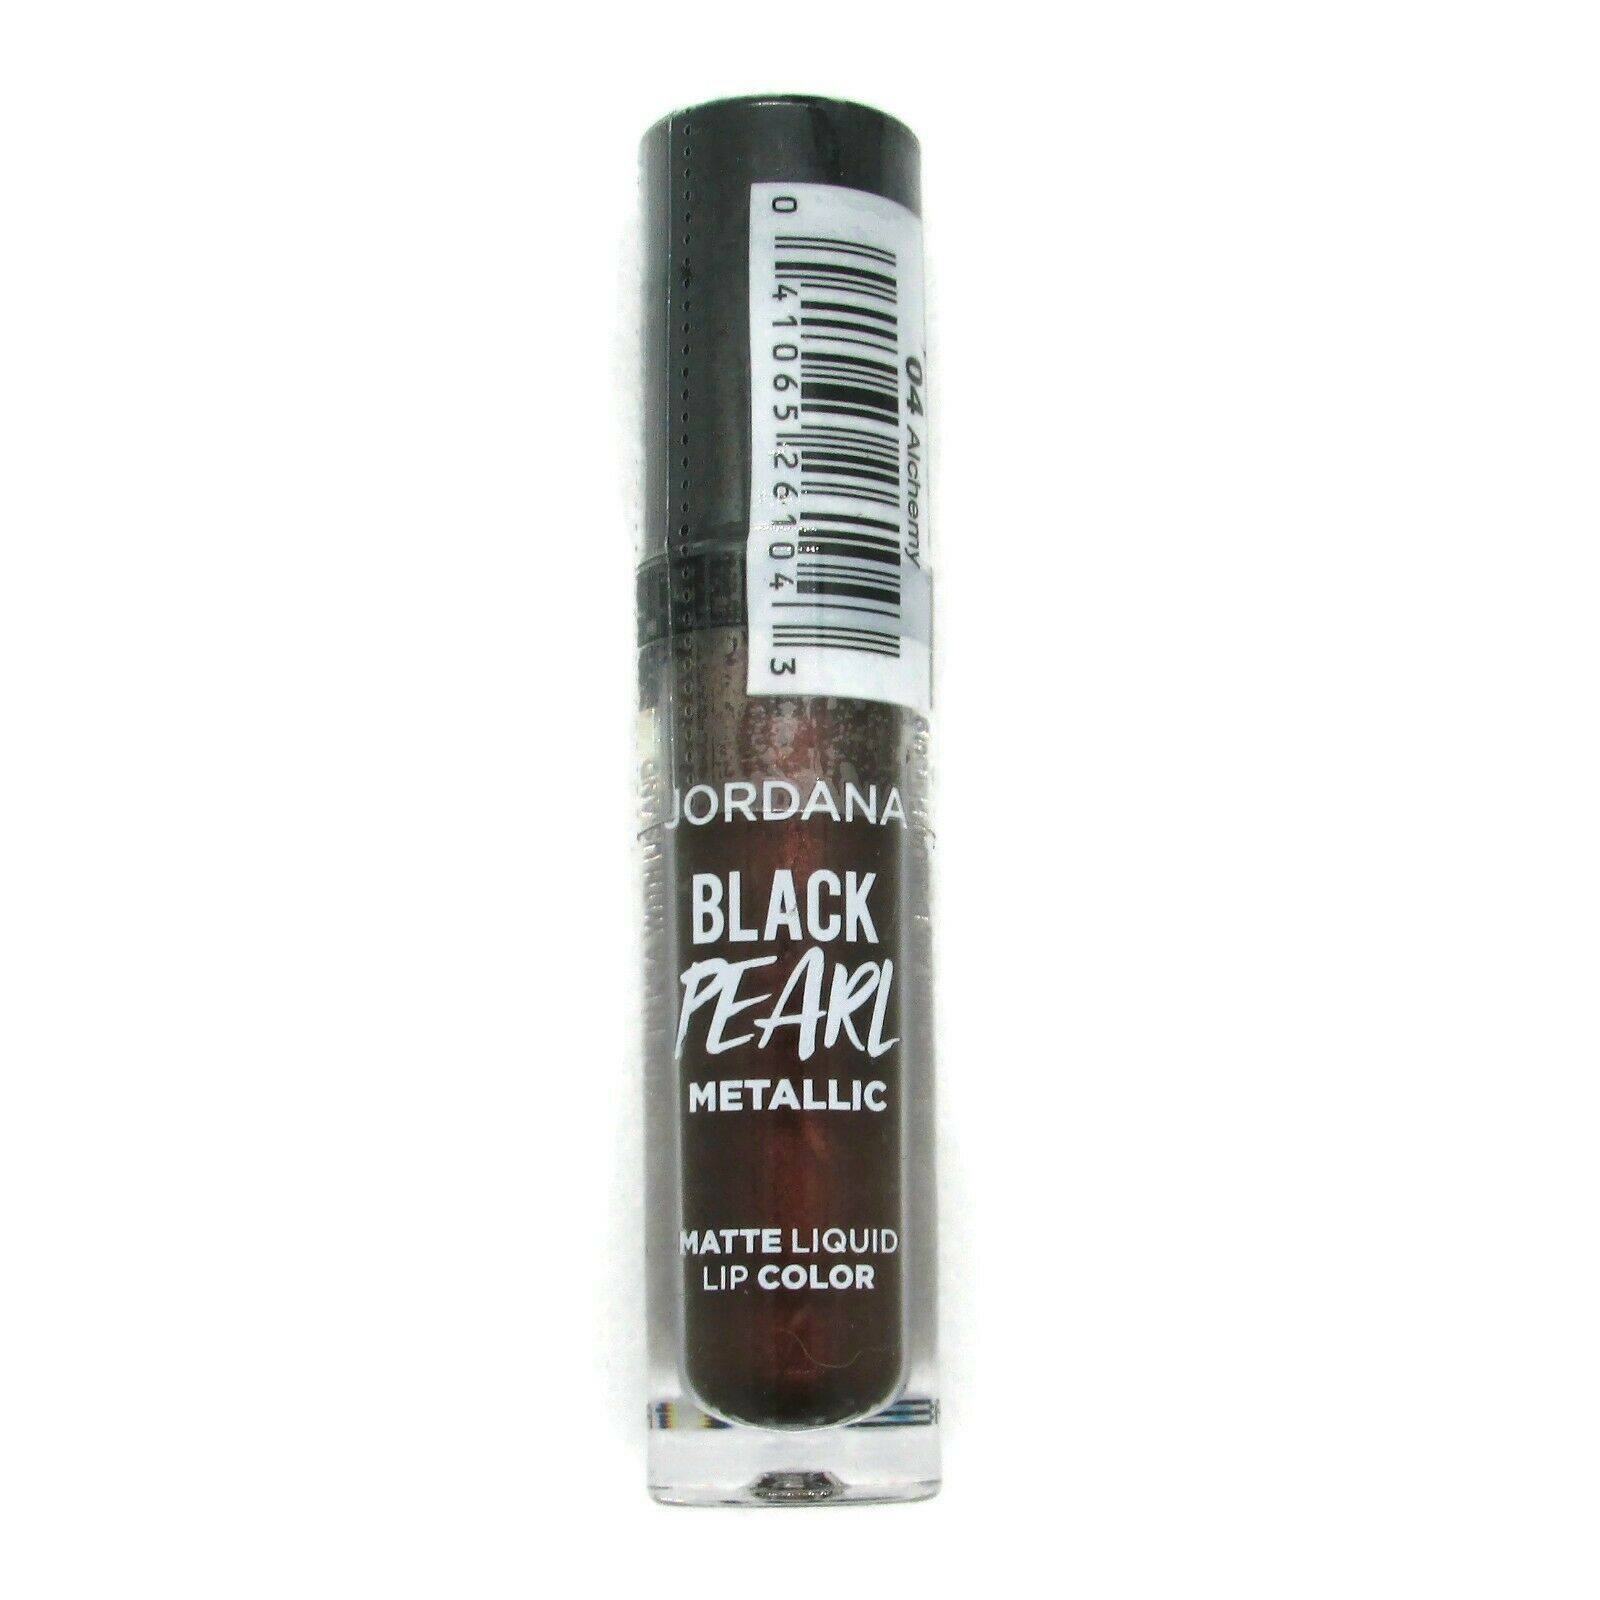 Jordana Black Pearl Metallic Matte Liquid Lip Choose Your Color - $3.99 - $8.99